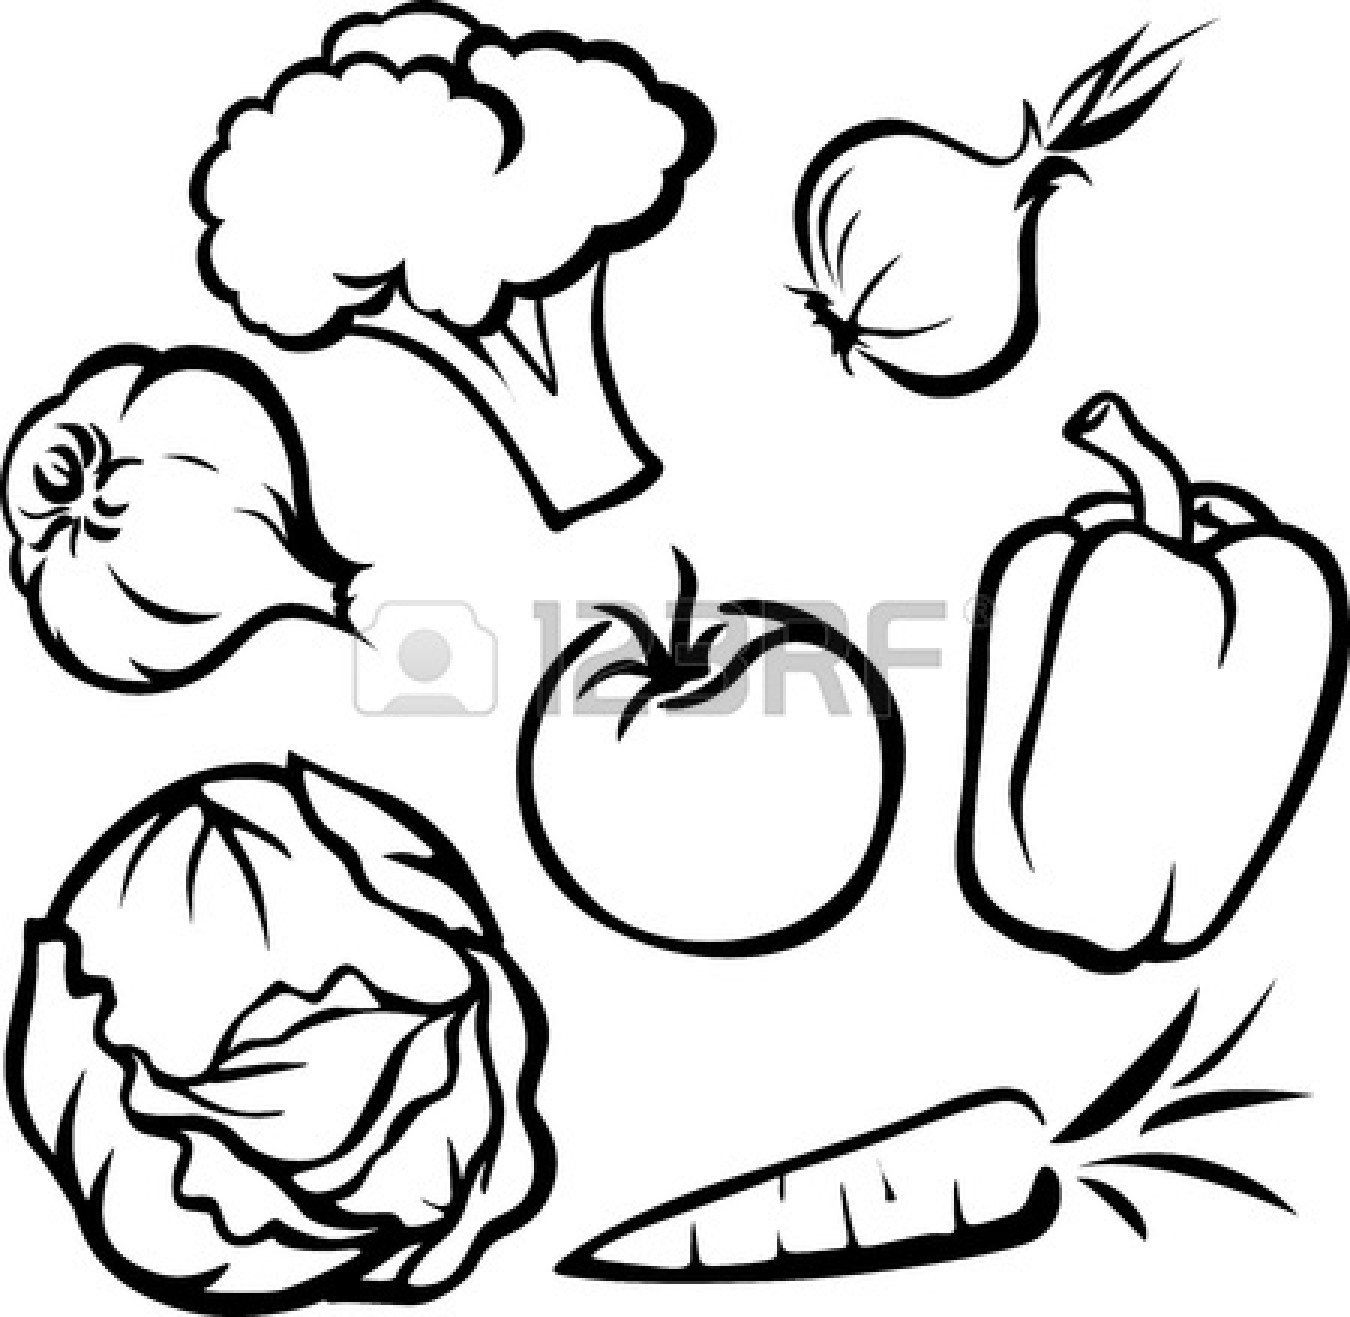 fruit and vegetable clipart black and white clipart